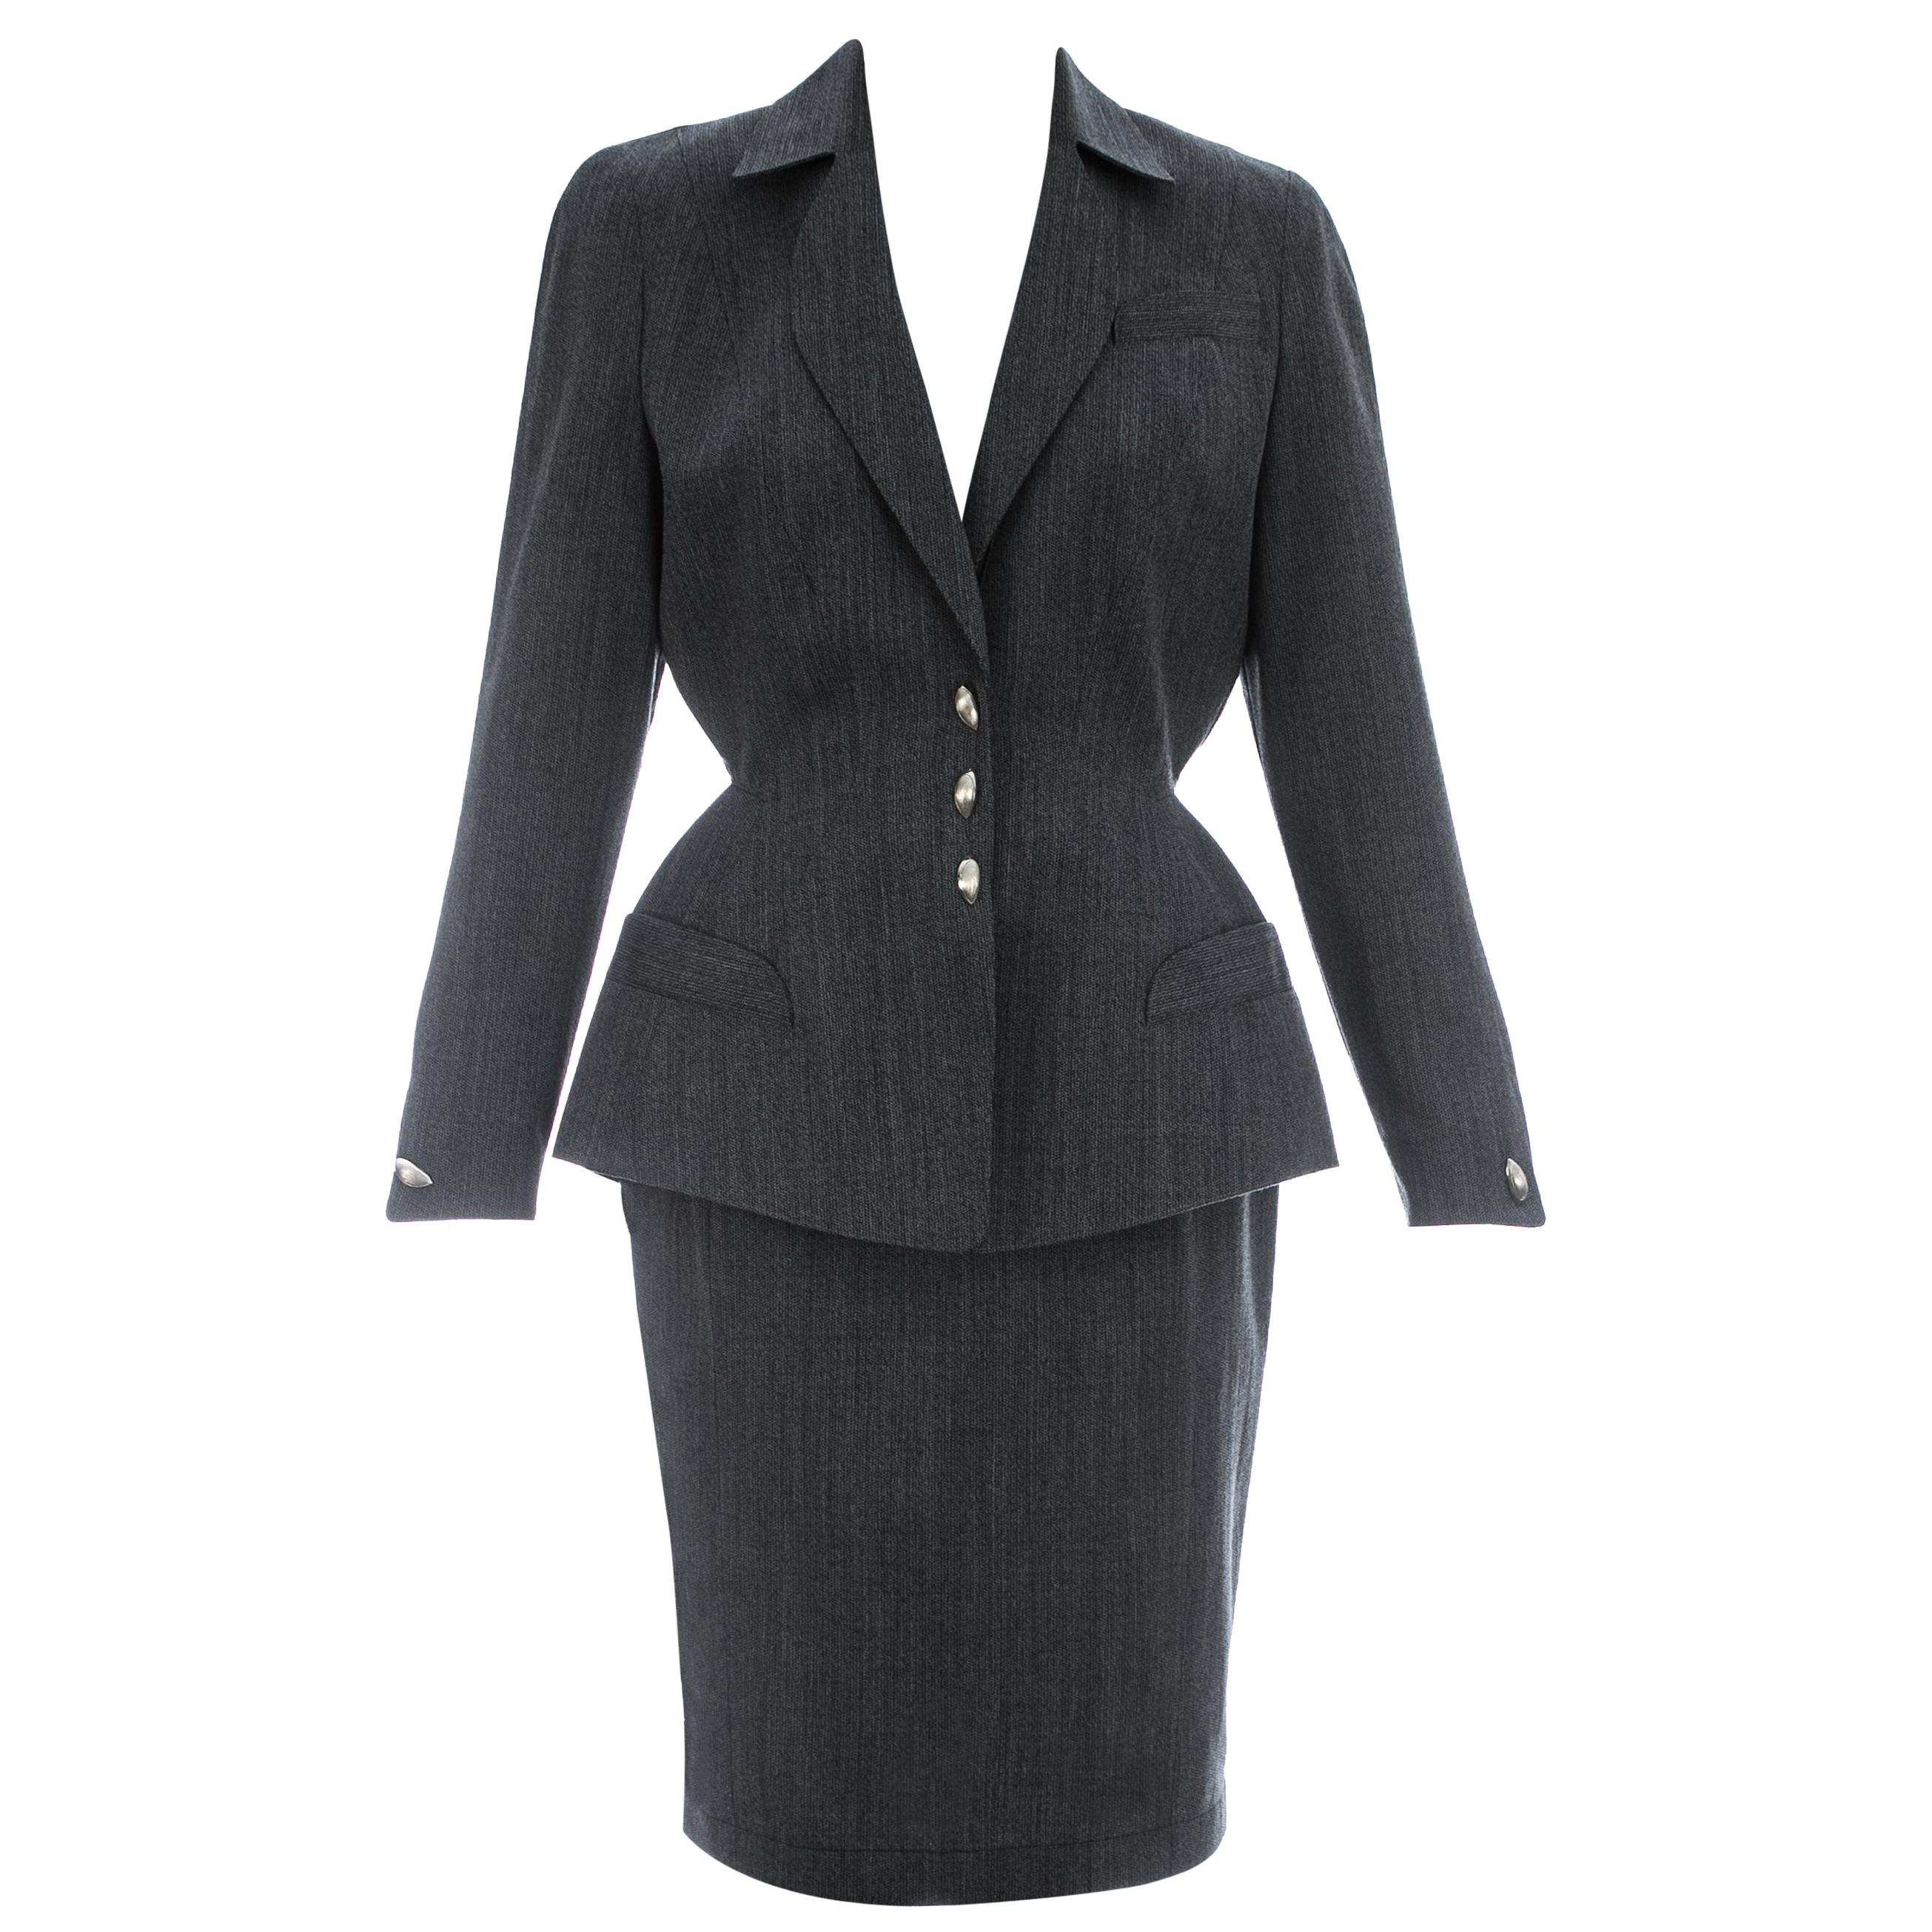 Thierry Mugler grey wool structured skirt suit, c. 1990s